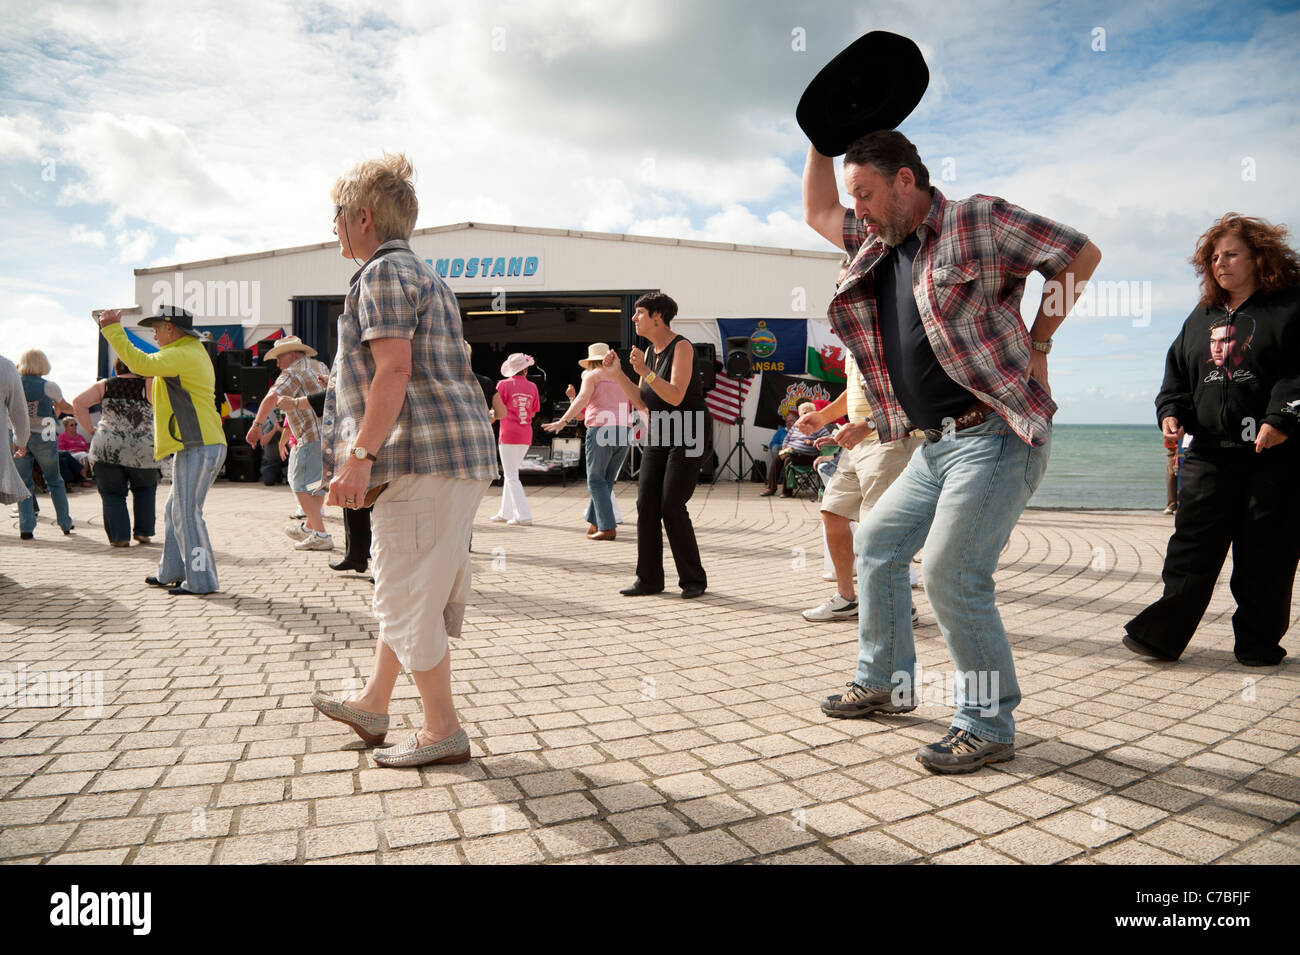 People Line dancing in aid of charity on Aberystwyth promenade wales UK - Stock Image